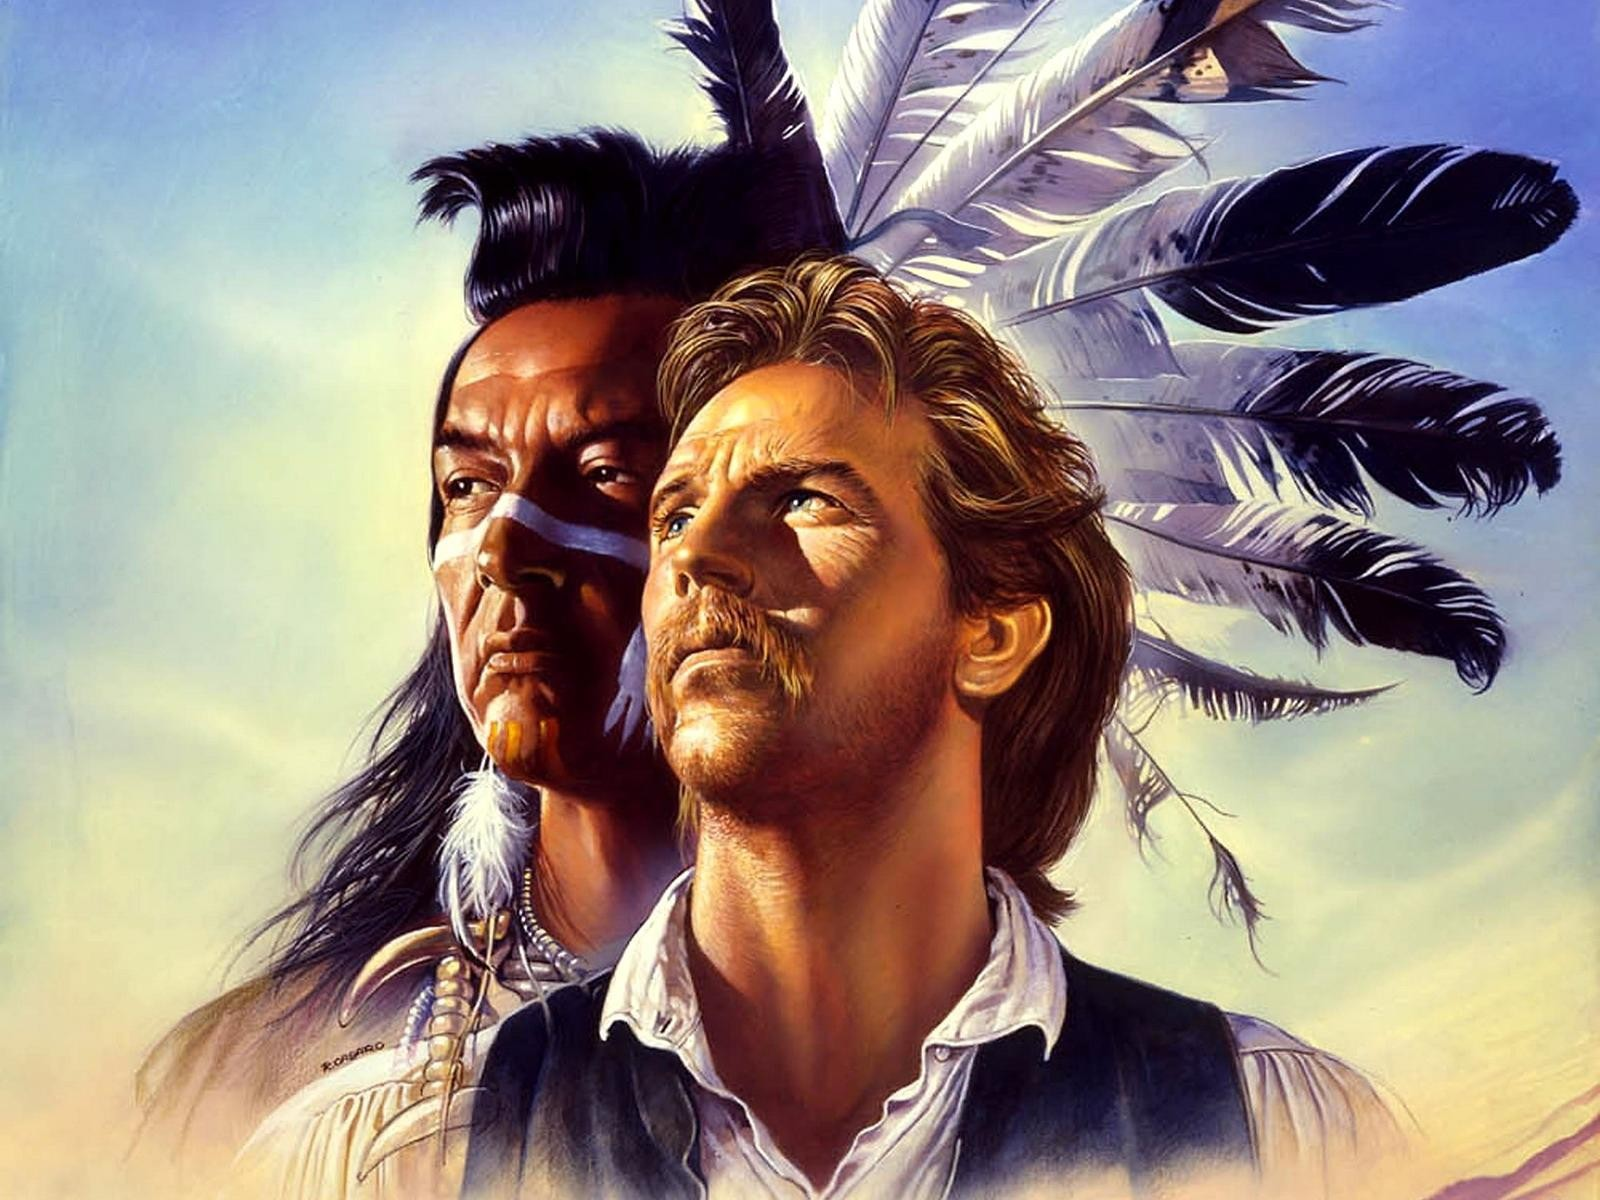 an analysis of the inaccuracies in the movie dances with wolves an epic western war film by kevin co See also: the history place selection of great history videos on world war ii and us history/people the history place selection of.